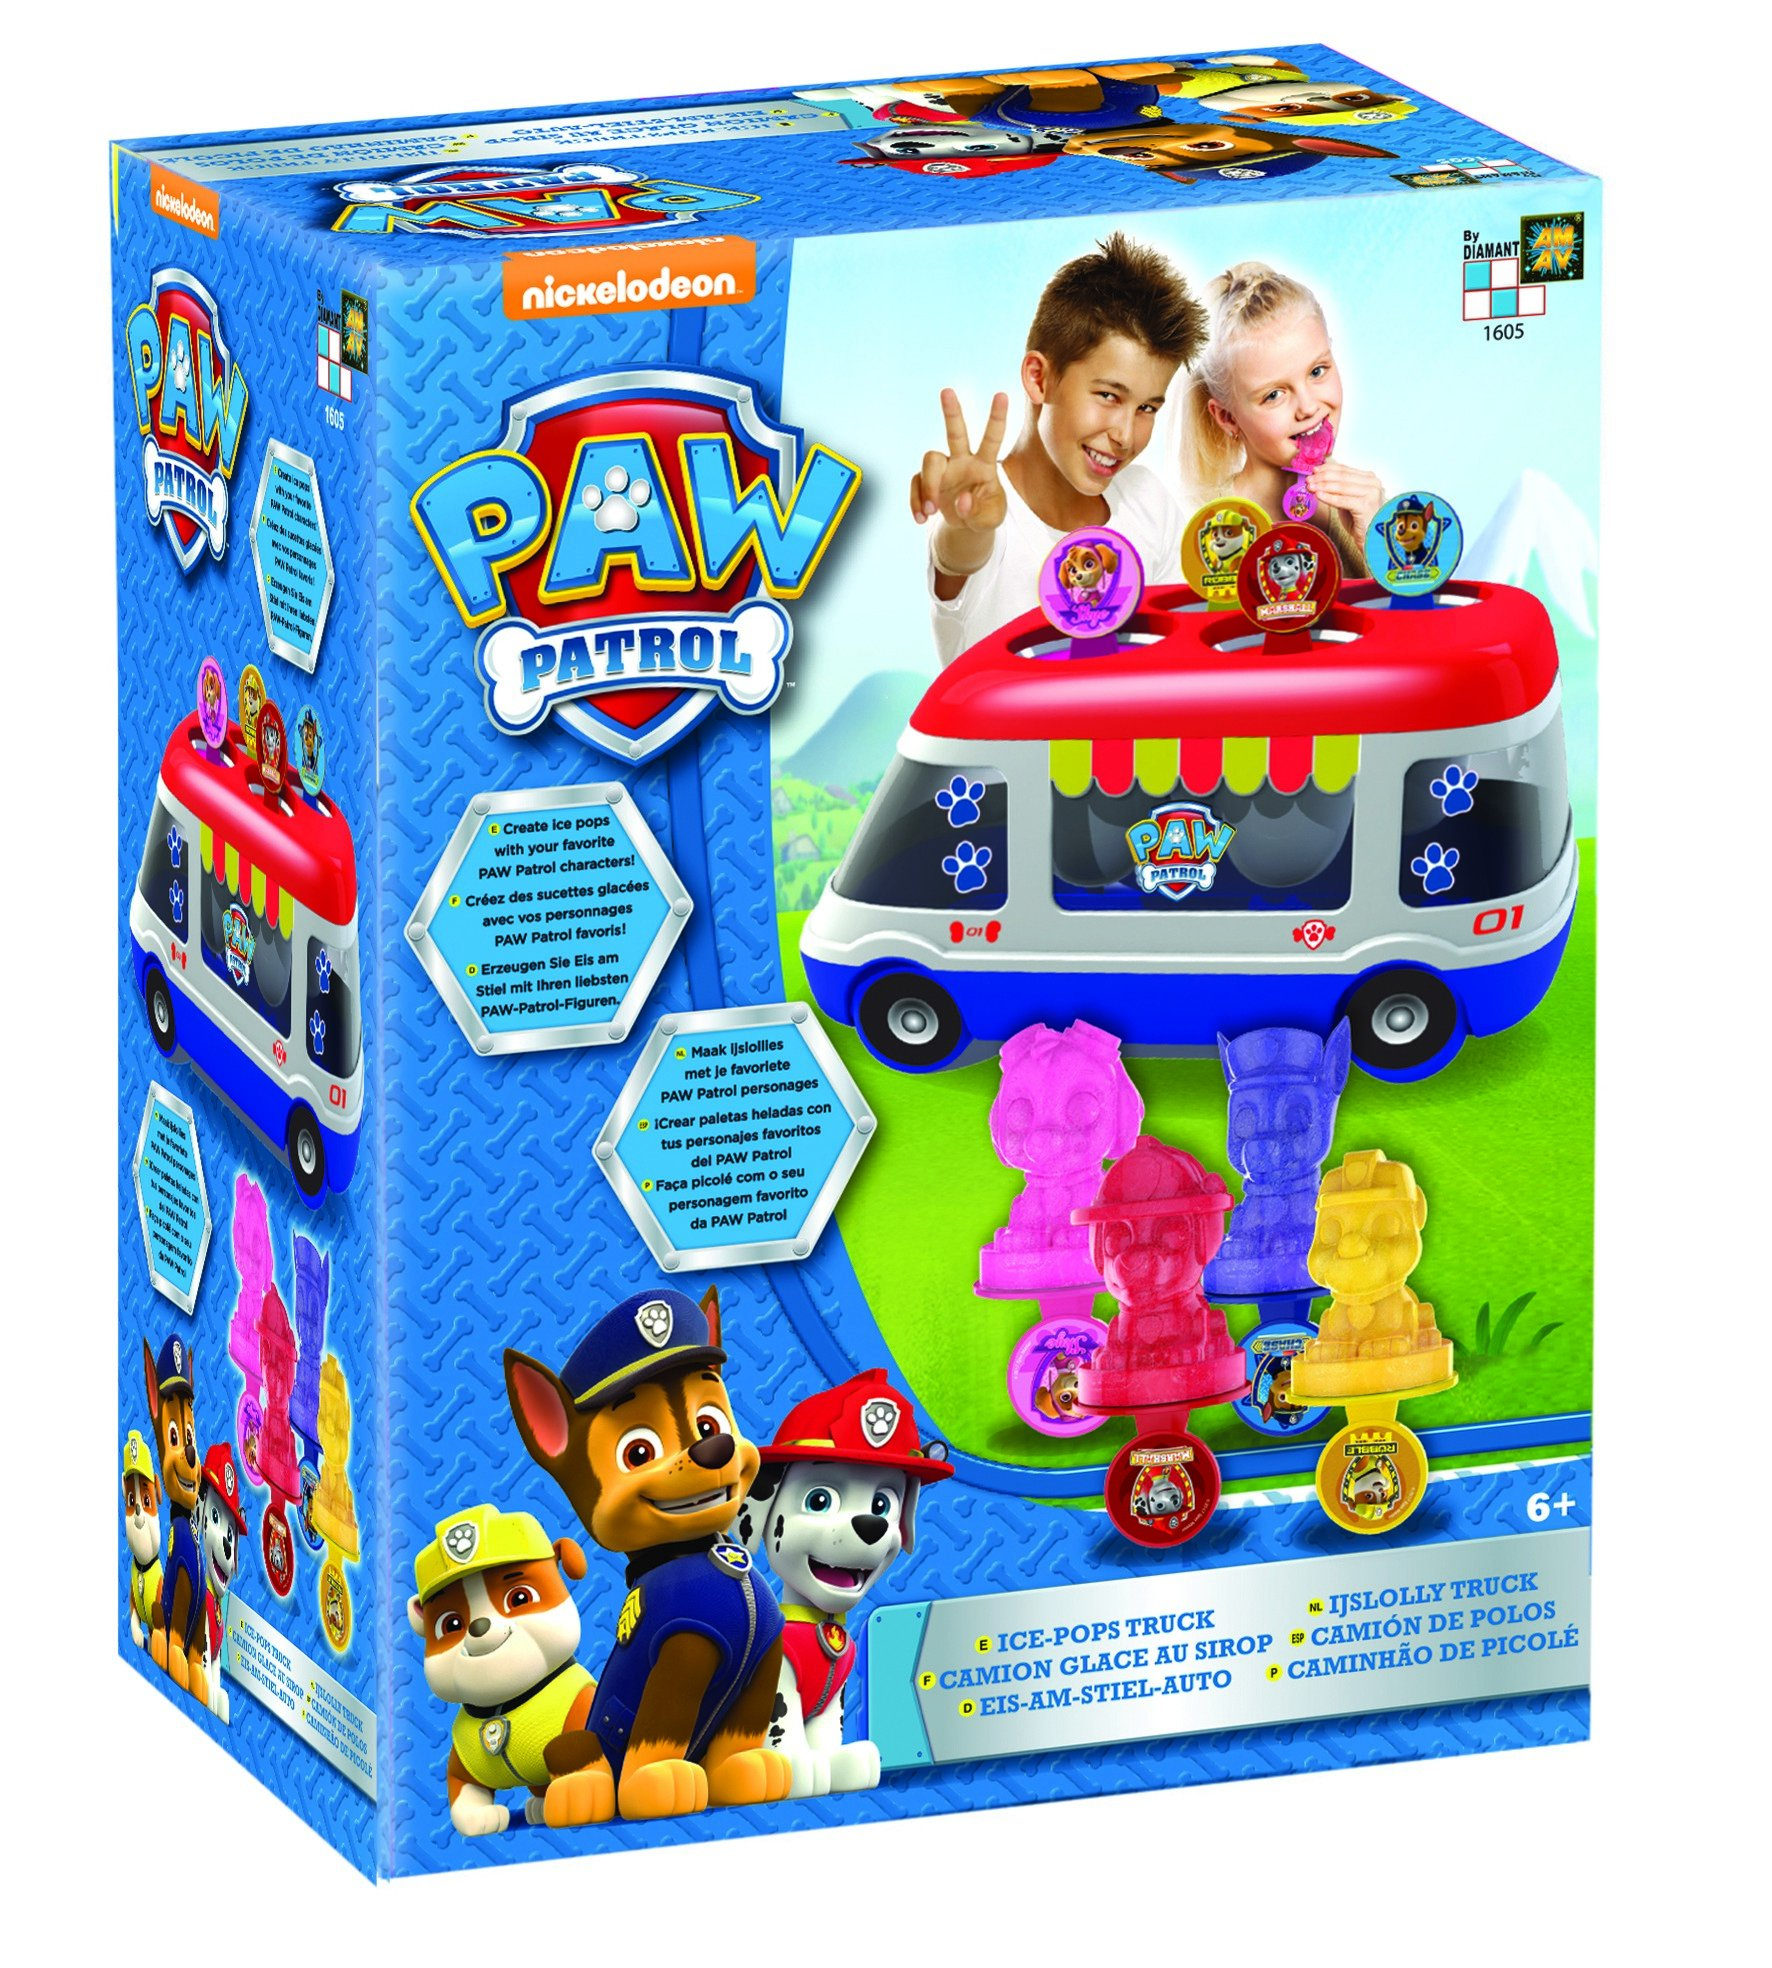 AMAV Paw Patrol Ice-Pops Truck Machine Kit for Kids - DIY Toy Make Your Own Paw Patrol Ice-Pops with Your Favorite Characters! by Nickelodeon (Image #3)